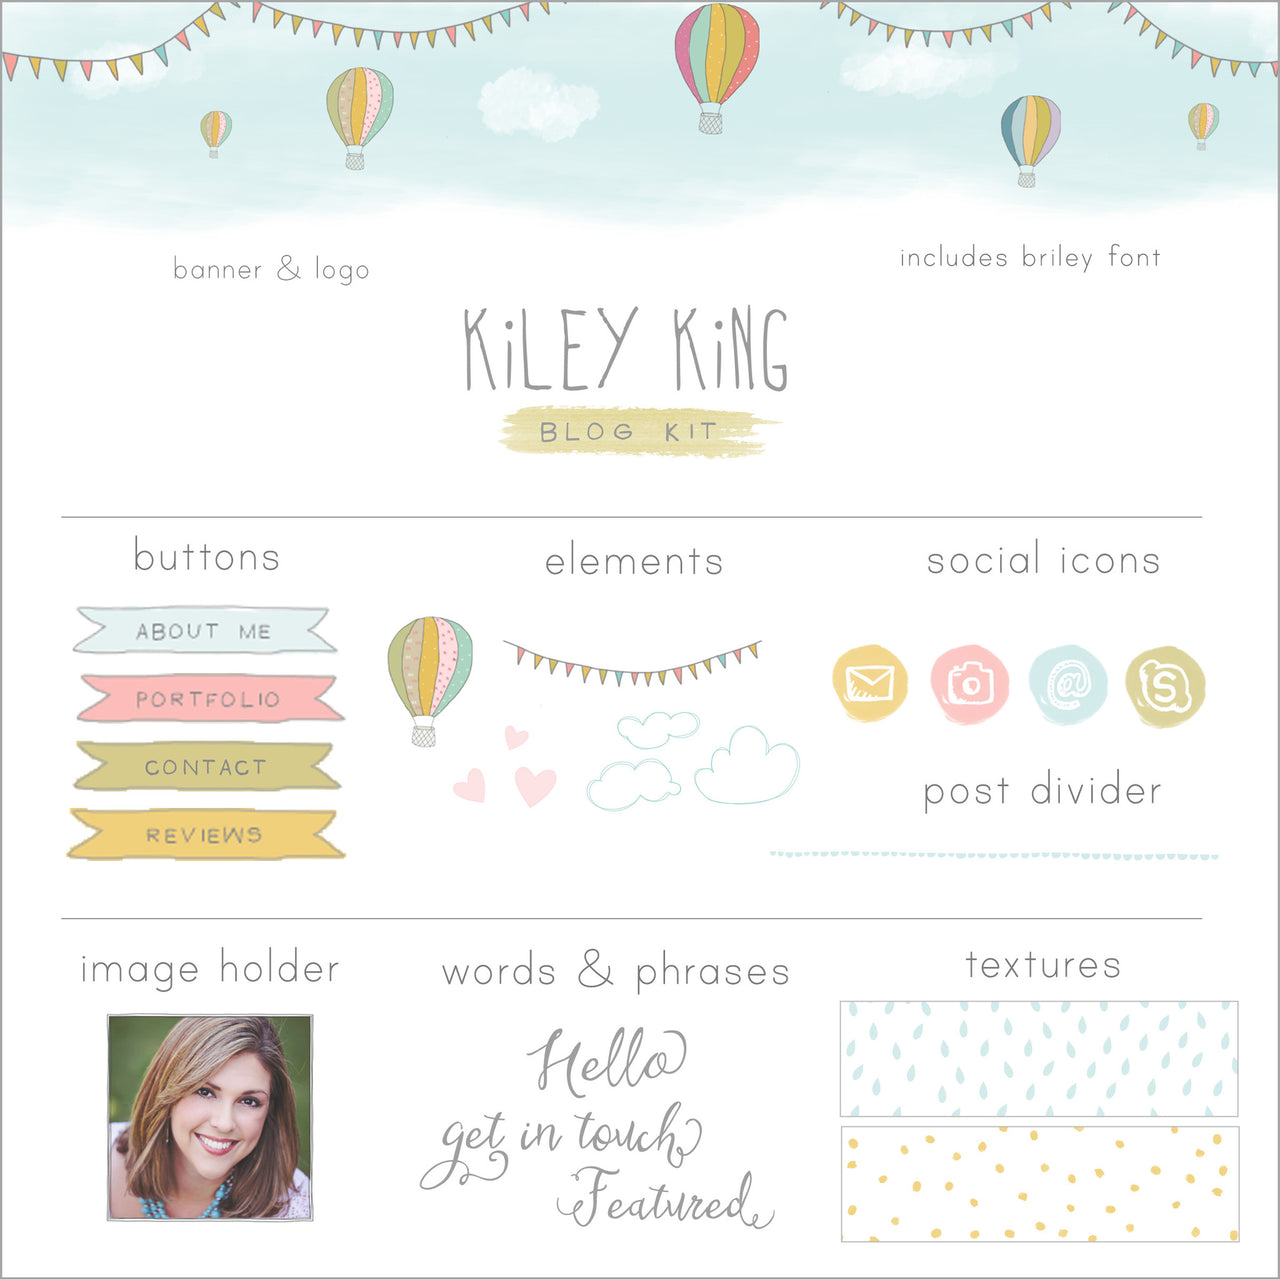 Hot Air Balloon Blog Kit & Logo